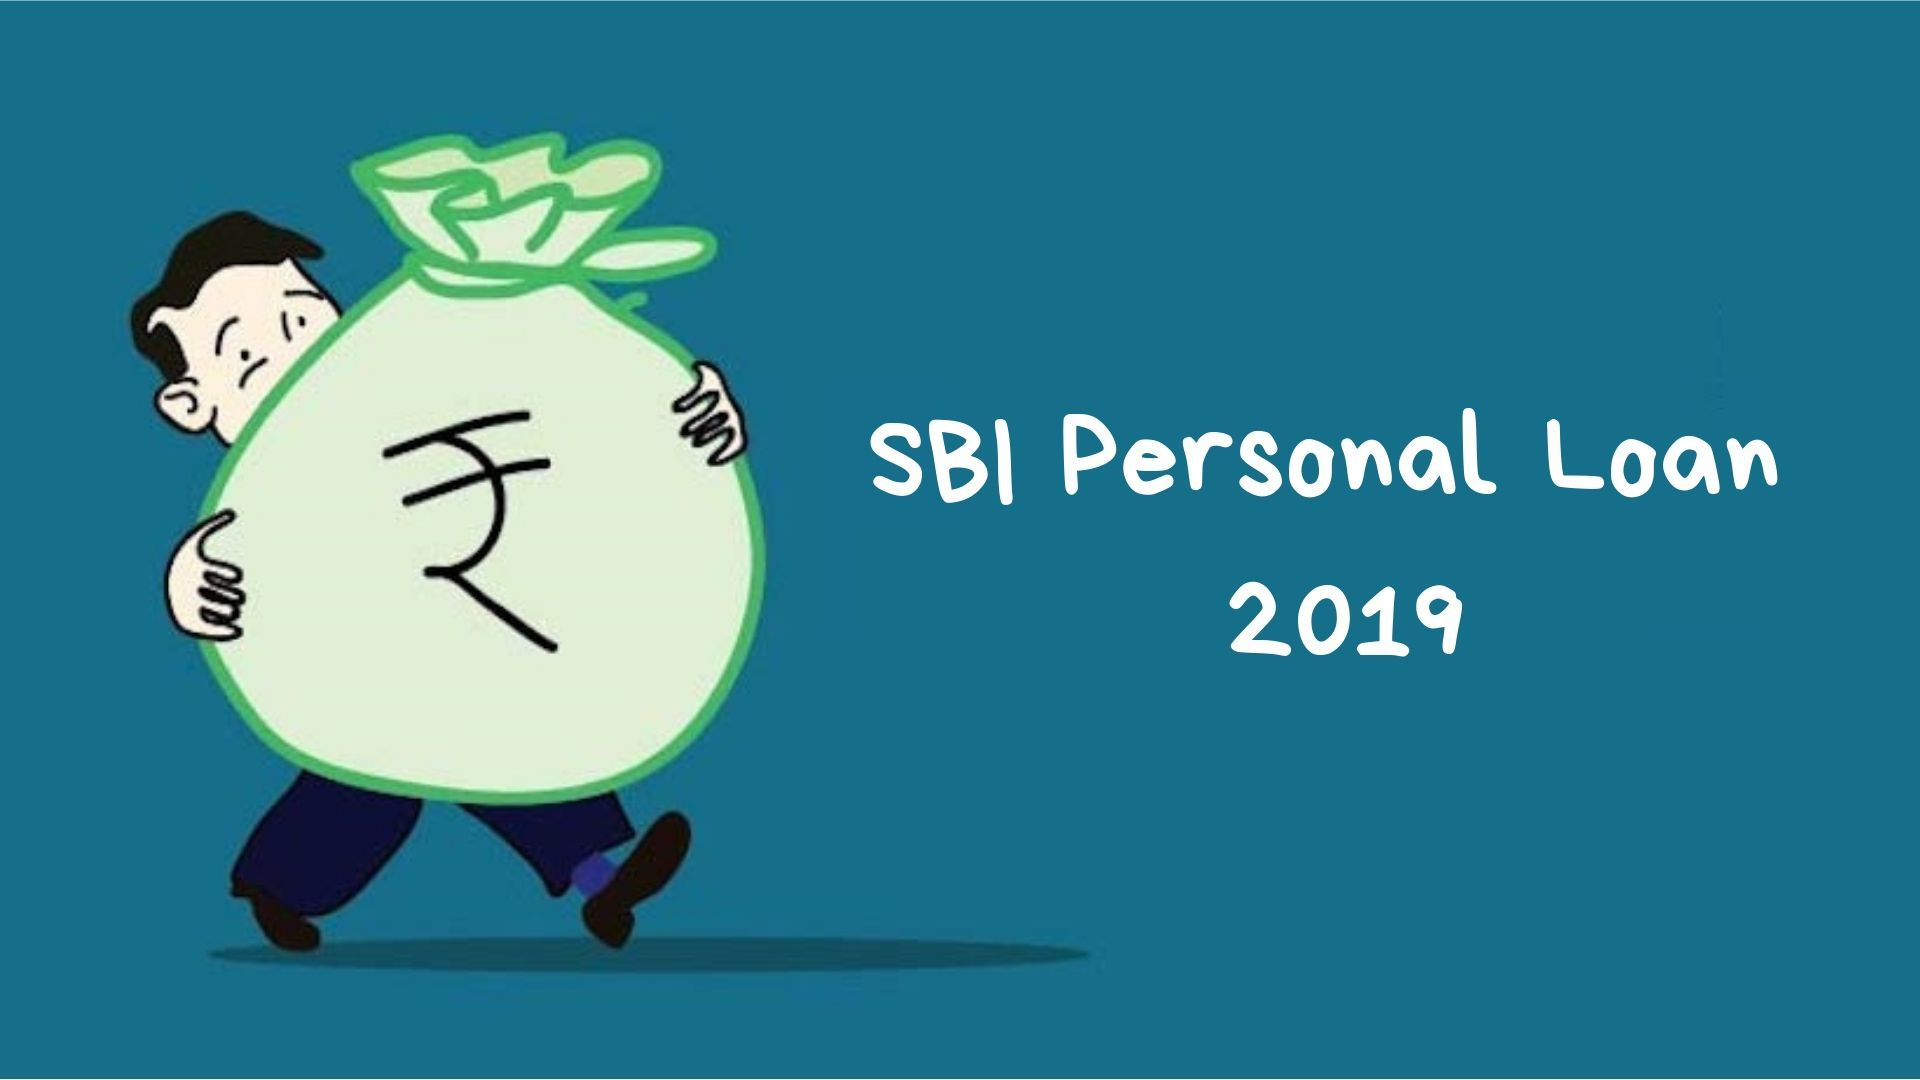 Why Sbi Personal Loan Is The Best Option In 2019 Personal Loans Loan Person